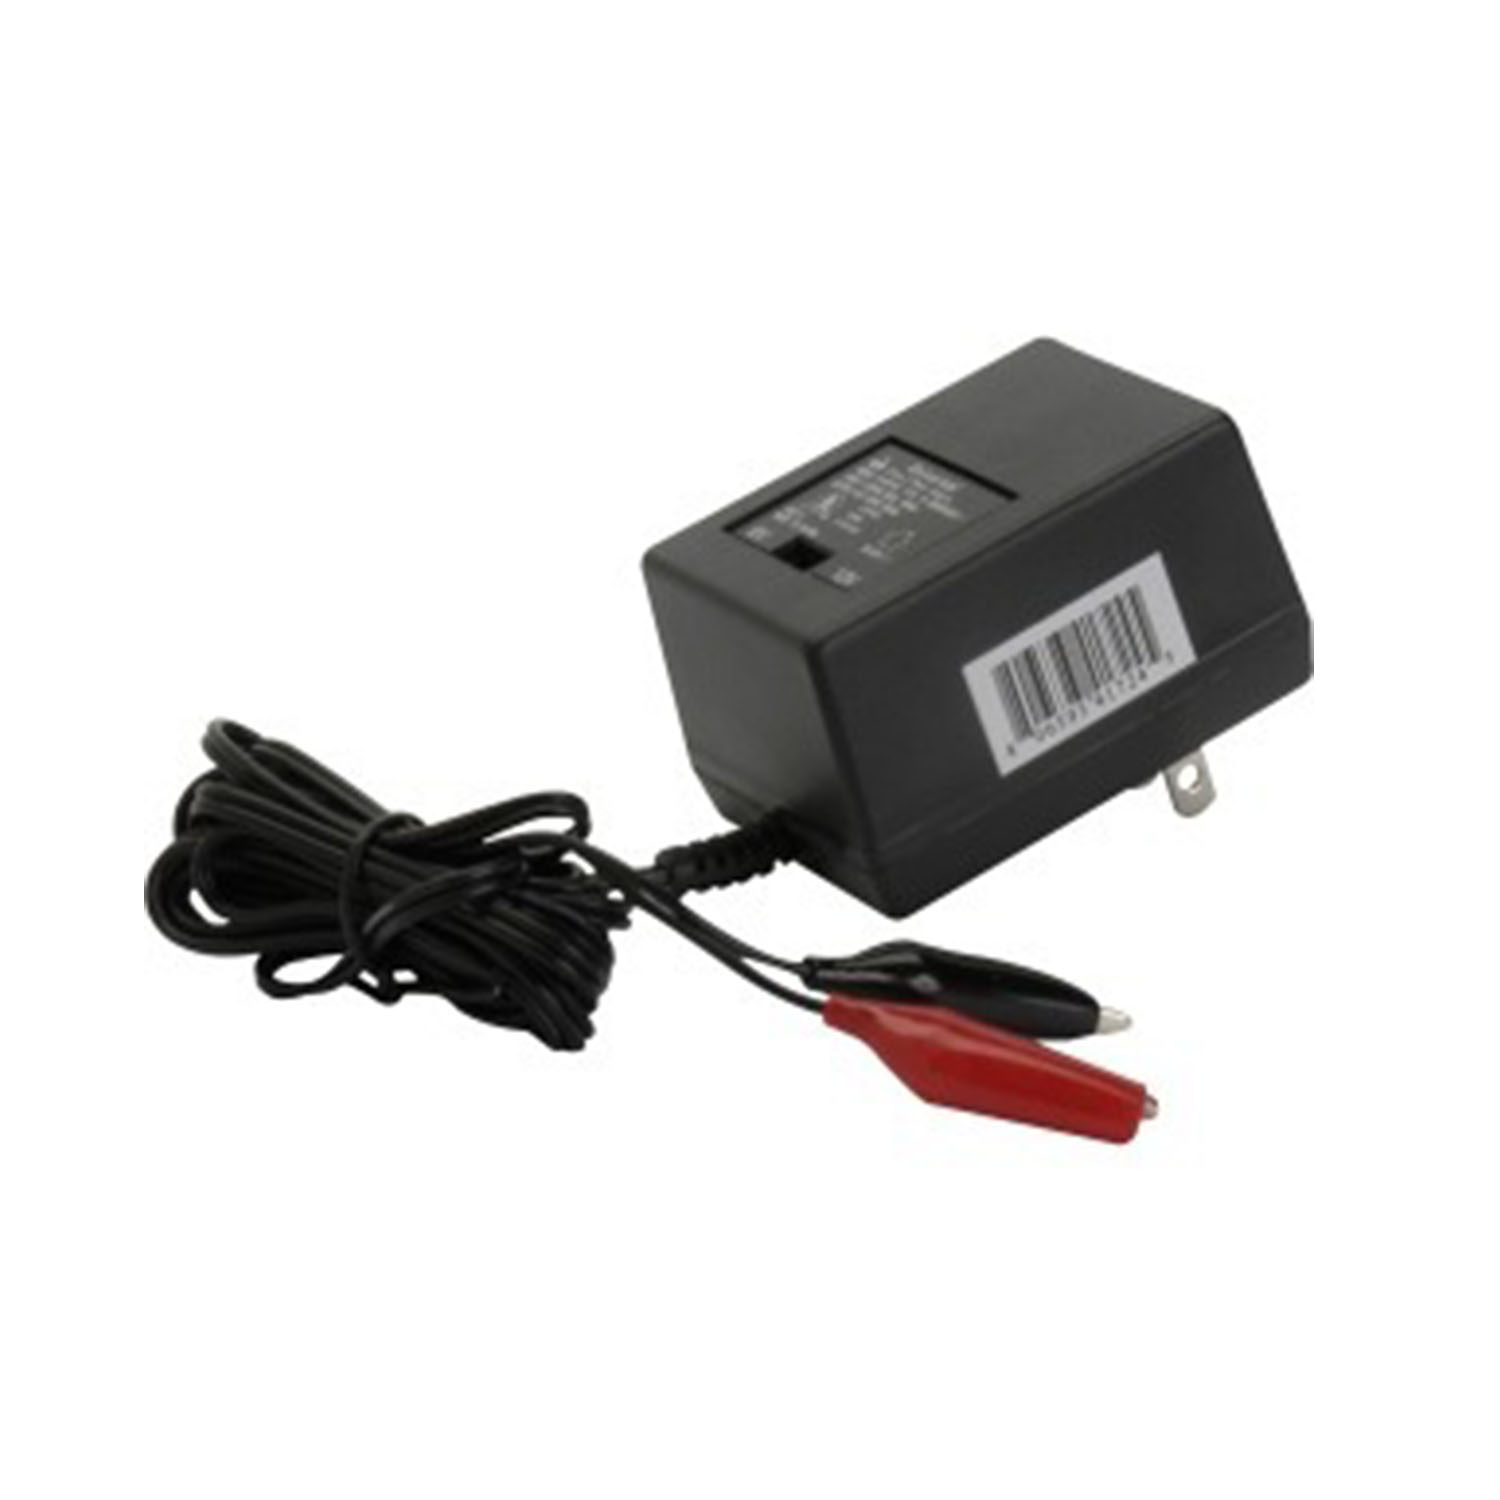 D1724 6V/12V Charger for 12V 5Ah Acme Security Systems AL6/12 Battery